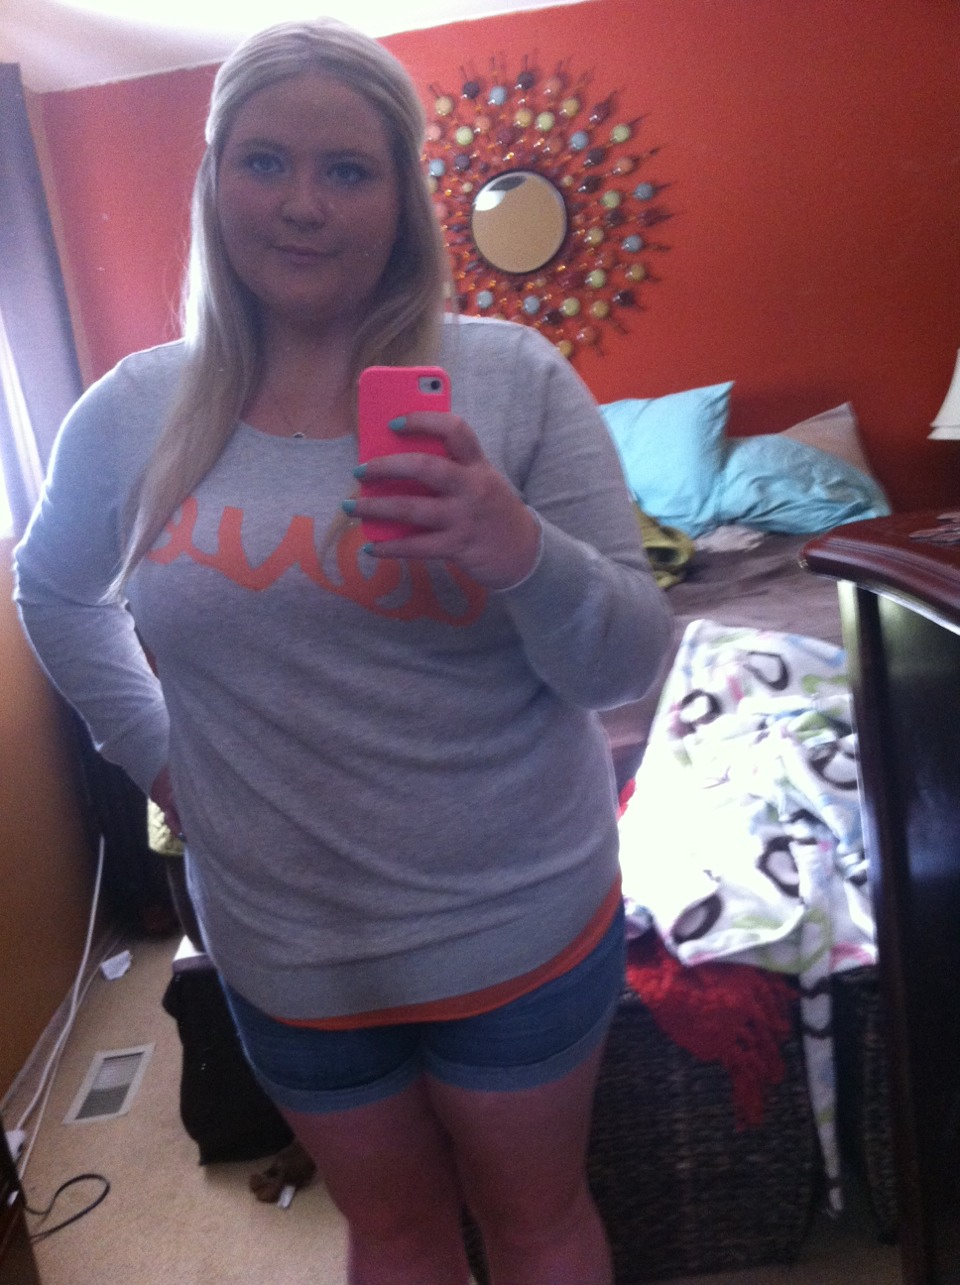 In unhappy with my weight and the way I look!, happiness is a choice and my weight loss journey starts today!